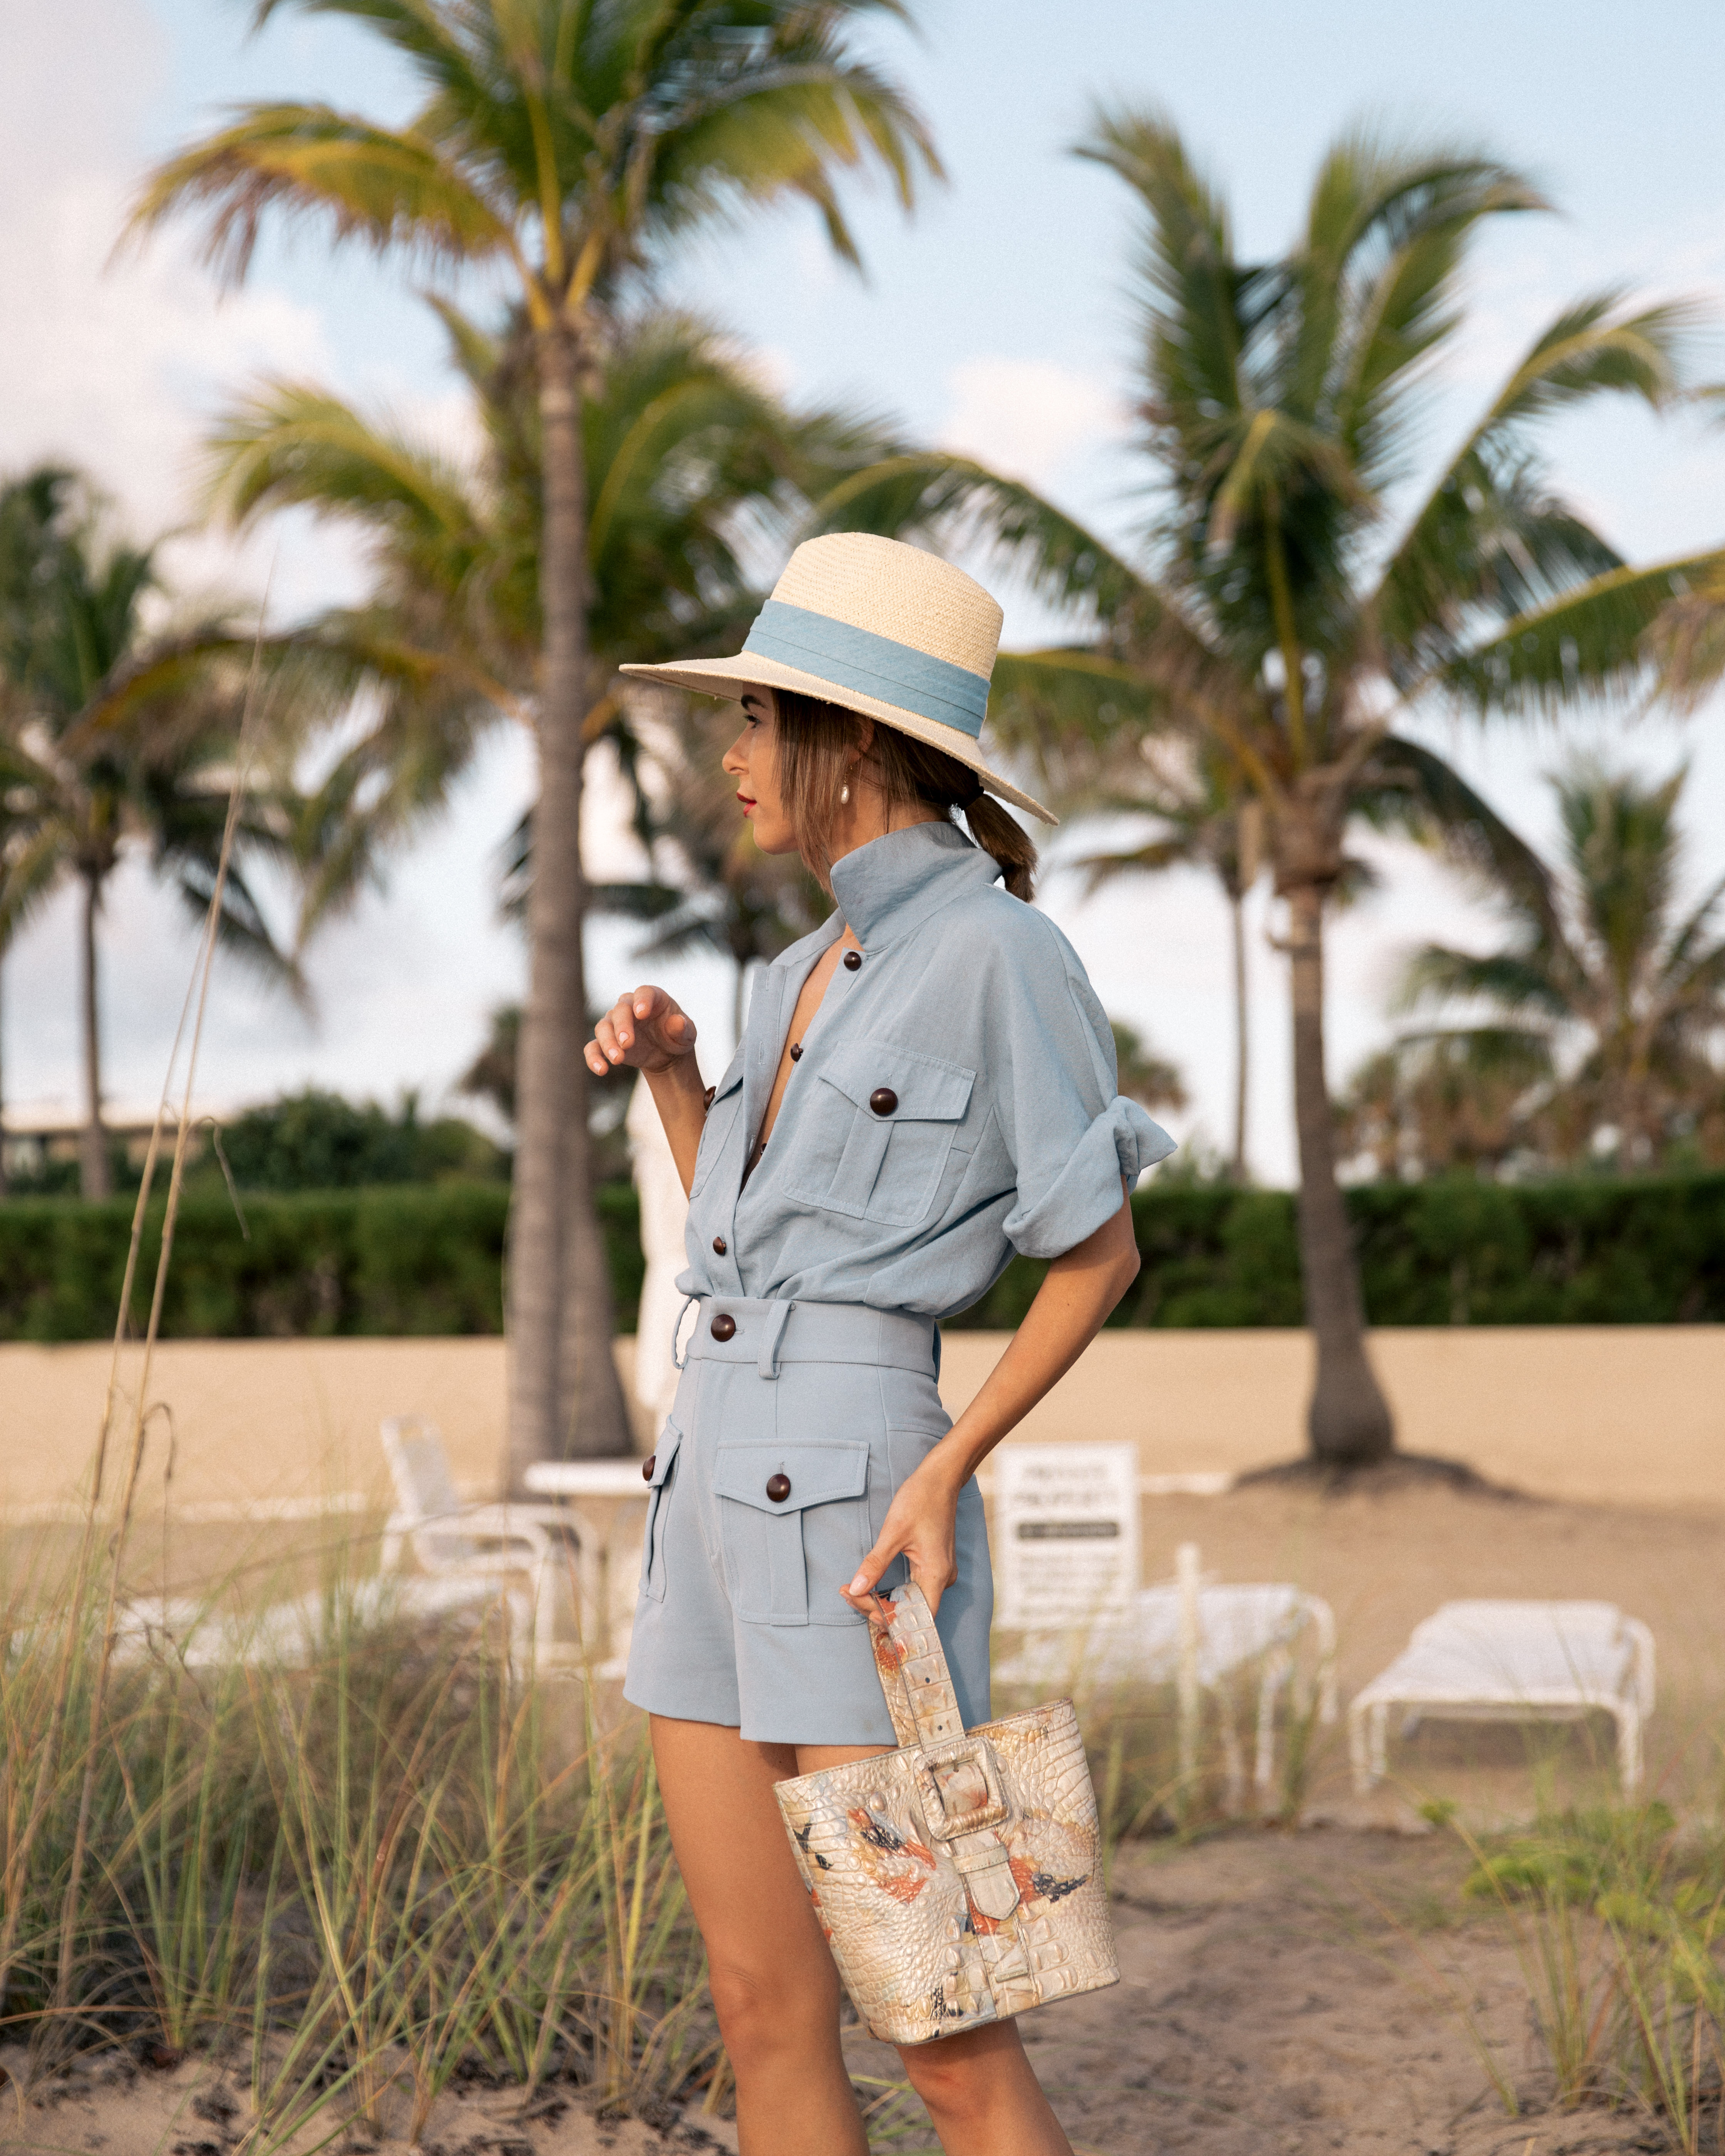 Style Blogger Stephanie Hill on The Style Bungalow shares From Hot to Hotter Brahmin